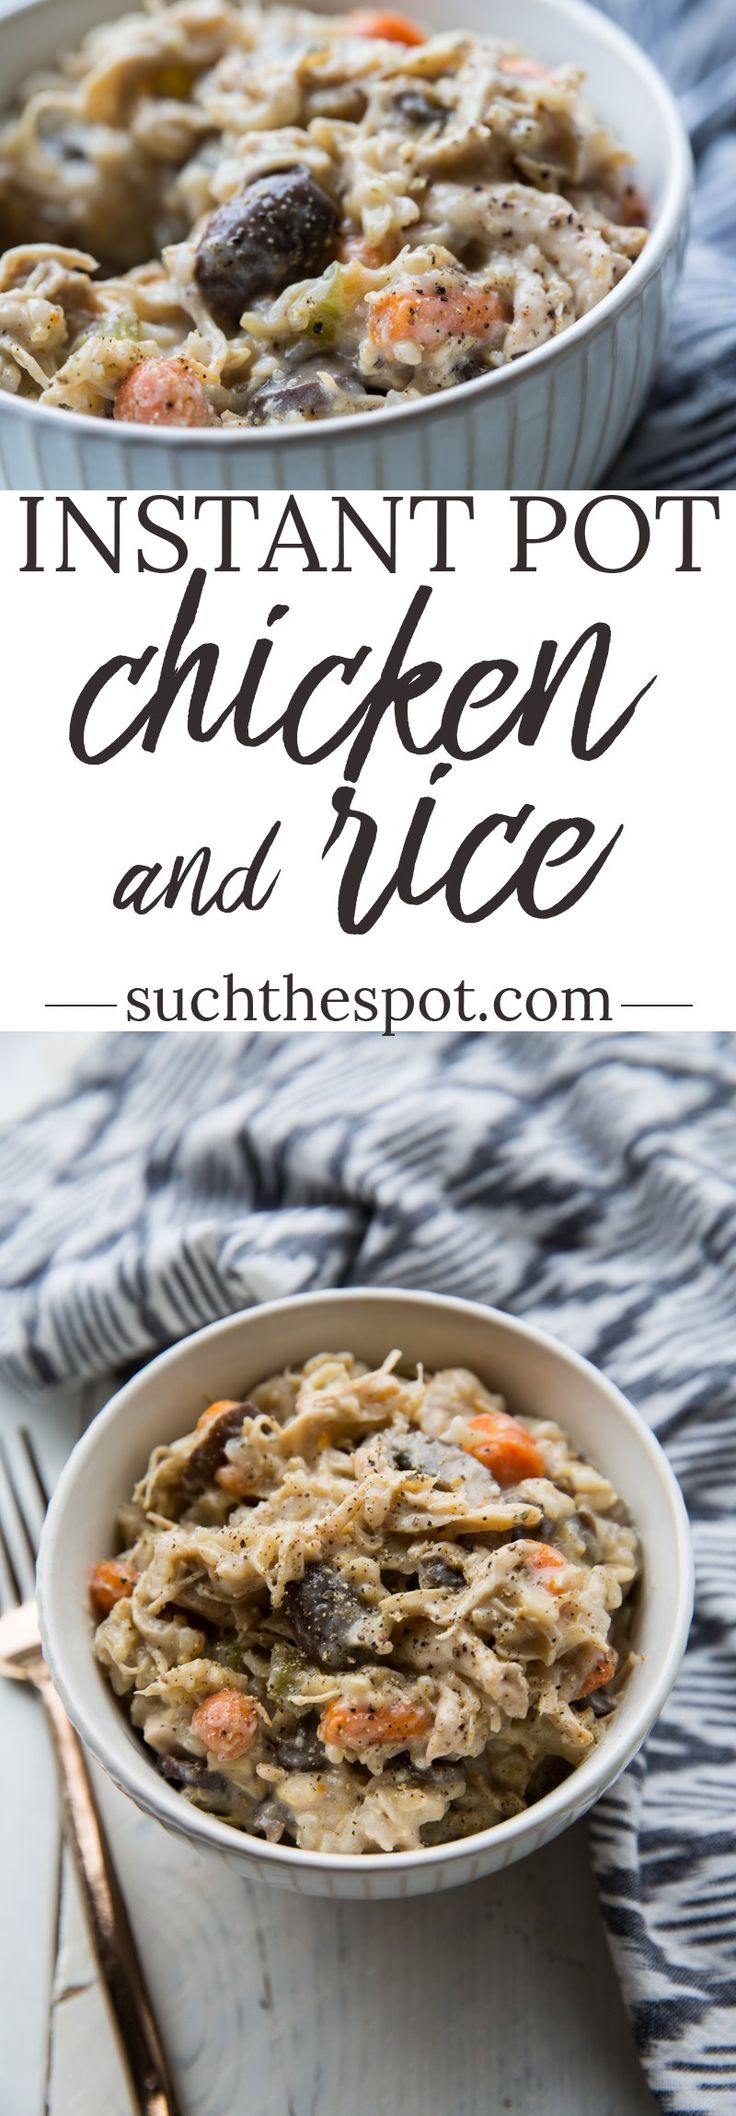 I threw every Chicken and Rice recipe out the window when I discovered this one. This Instant Pot Chicken and Rice is easy, creamy and as delicious and comfort food can get. Inspired by the Cracker Barrel dish, this one is a guaranteed family favorite.